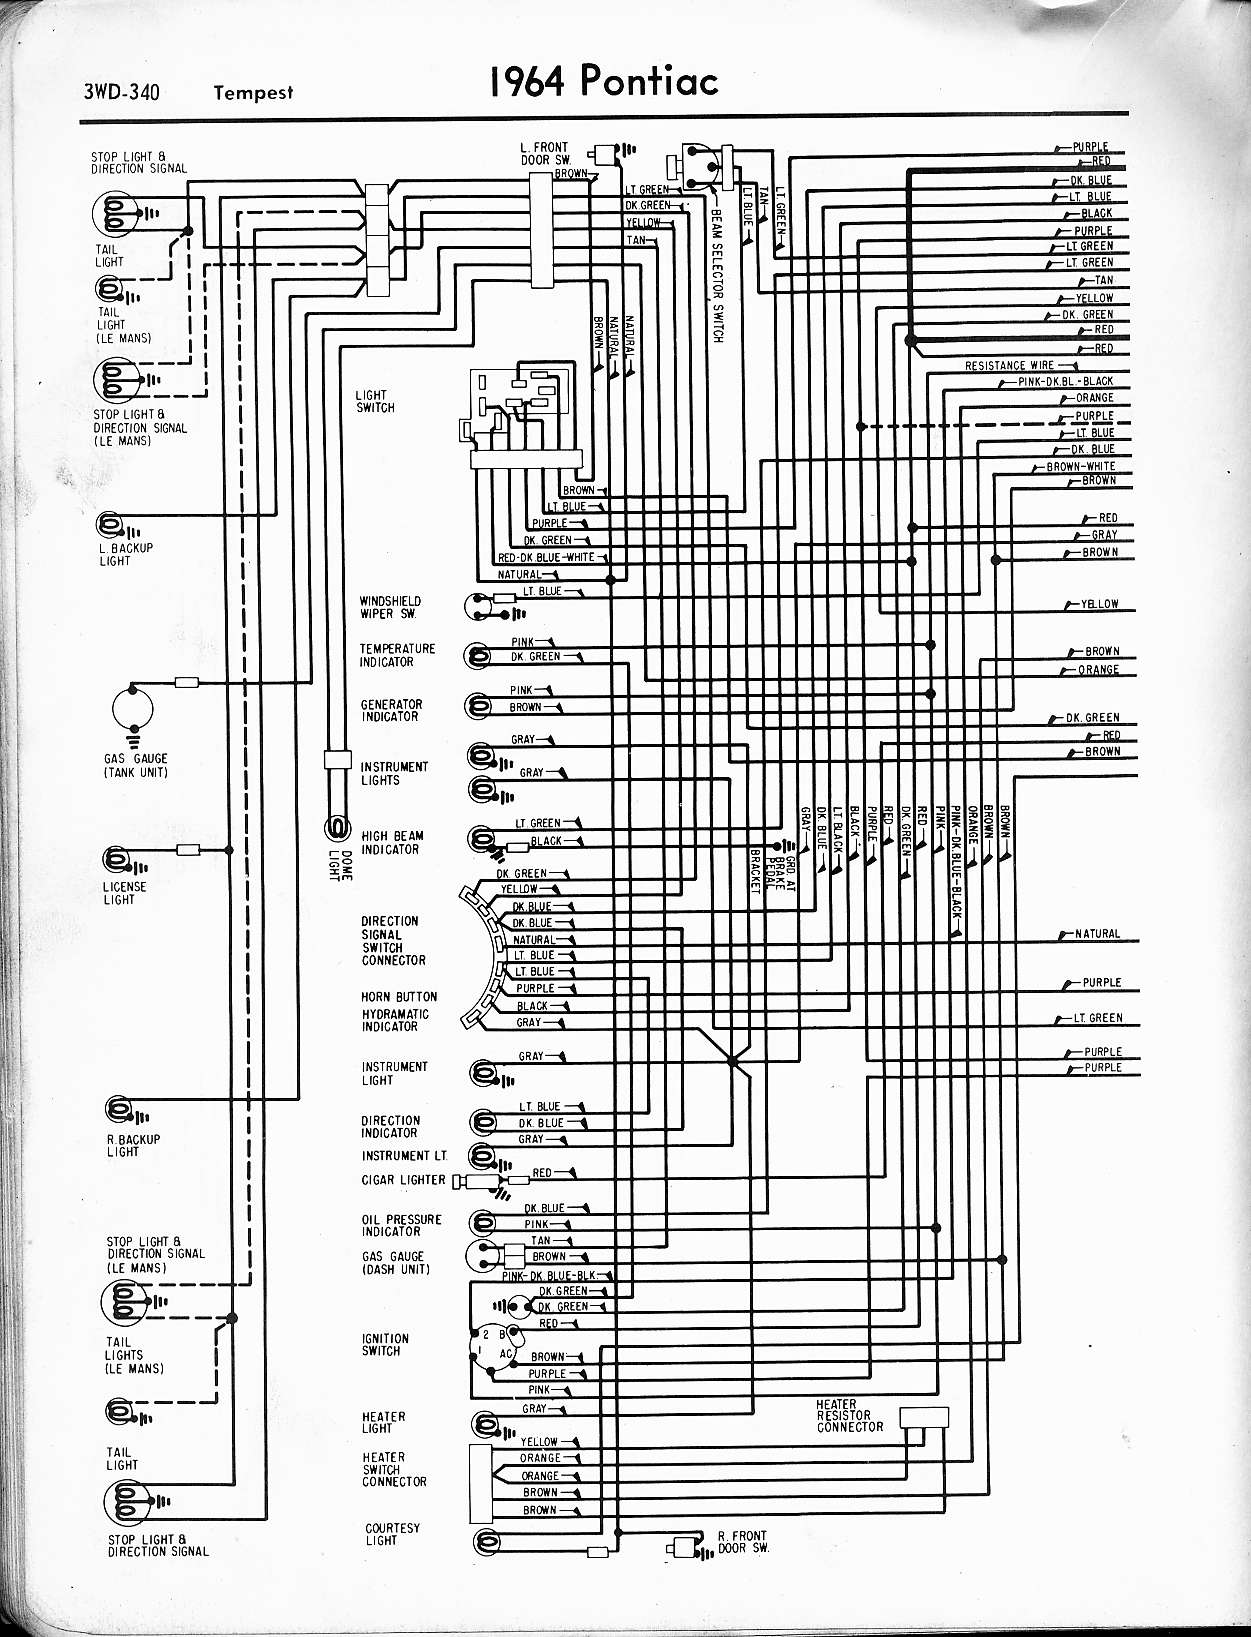 1967 pontiac gto le mans tempest wiring diagram wiring diagram u2022 rh msblog co 1969 Ford Galaxie 500 Wiring Diagram 1964 Ford Galaxie Wiring-Diagram